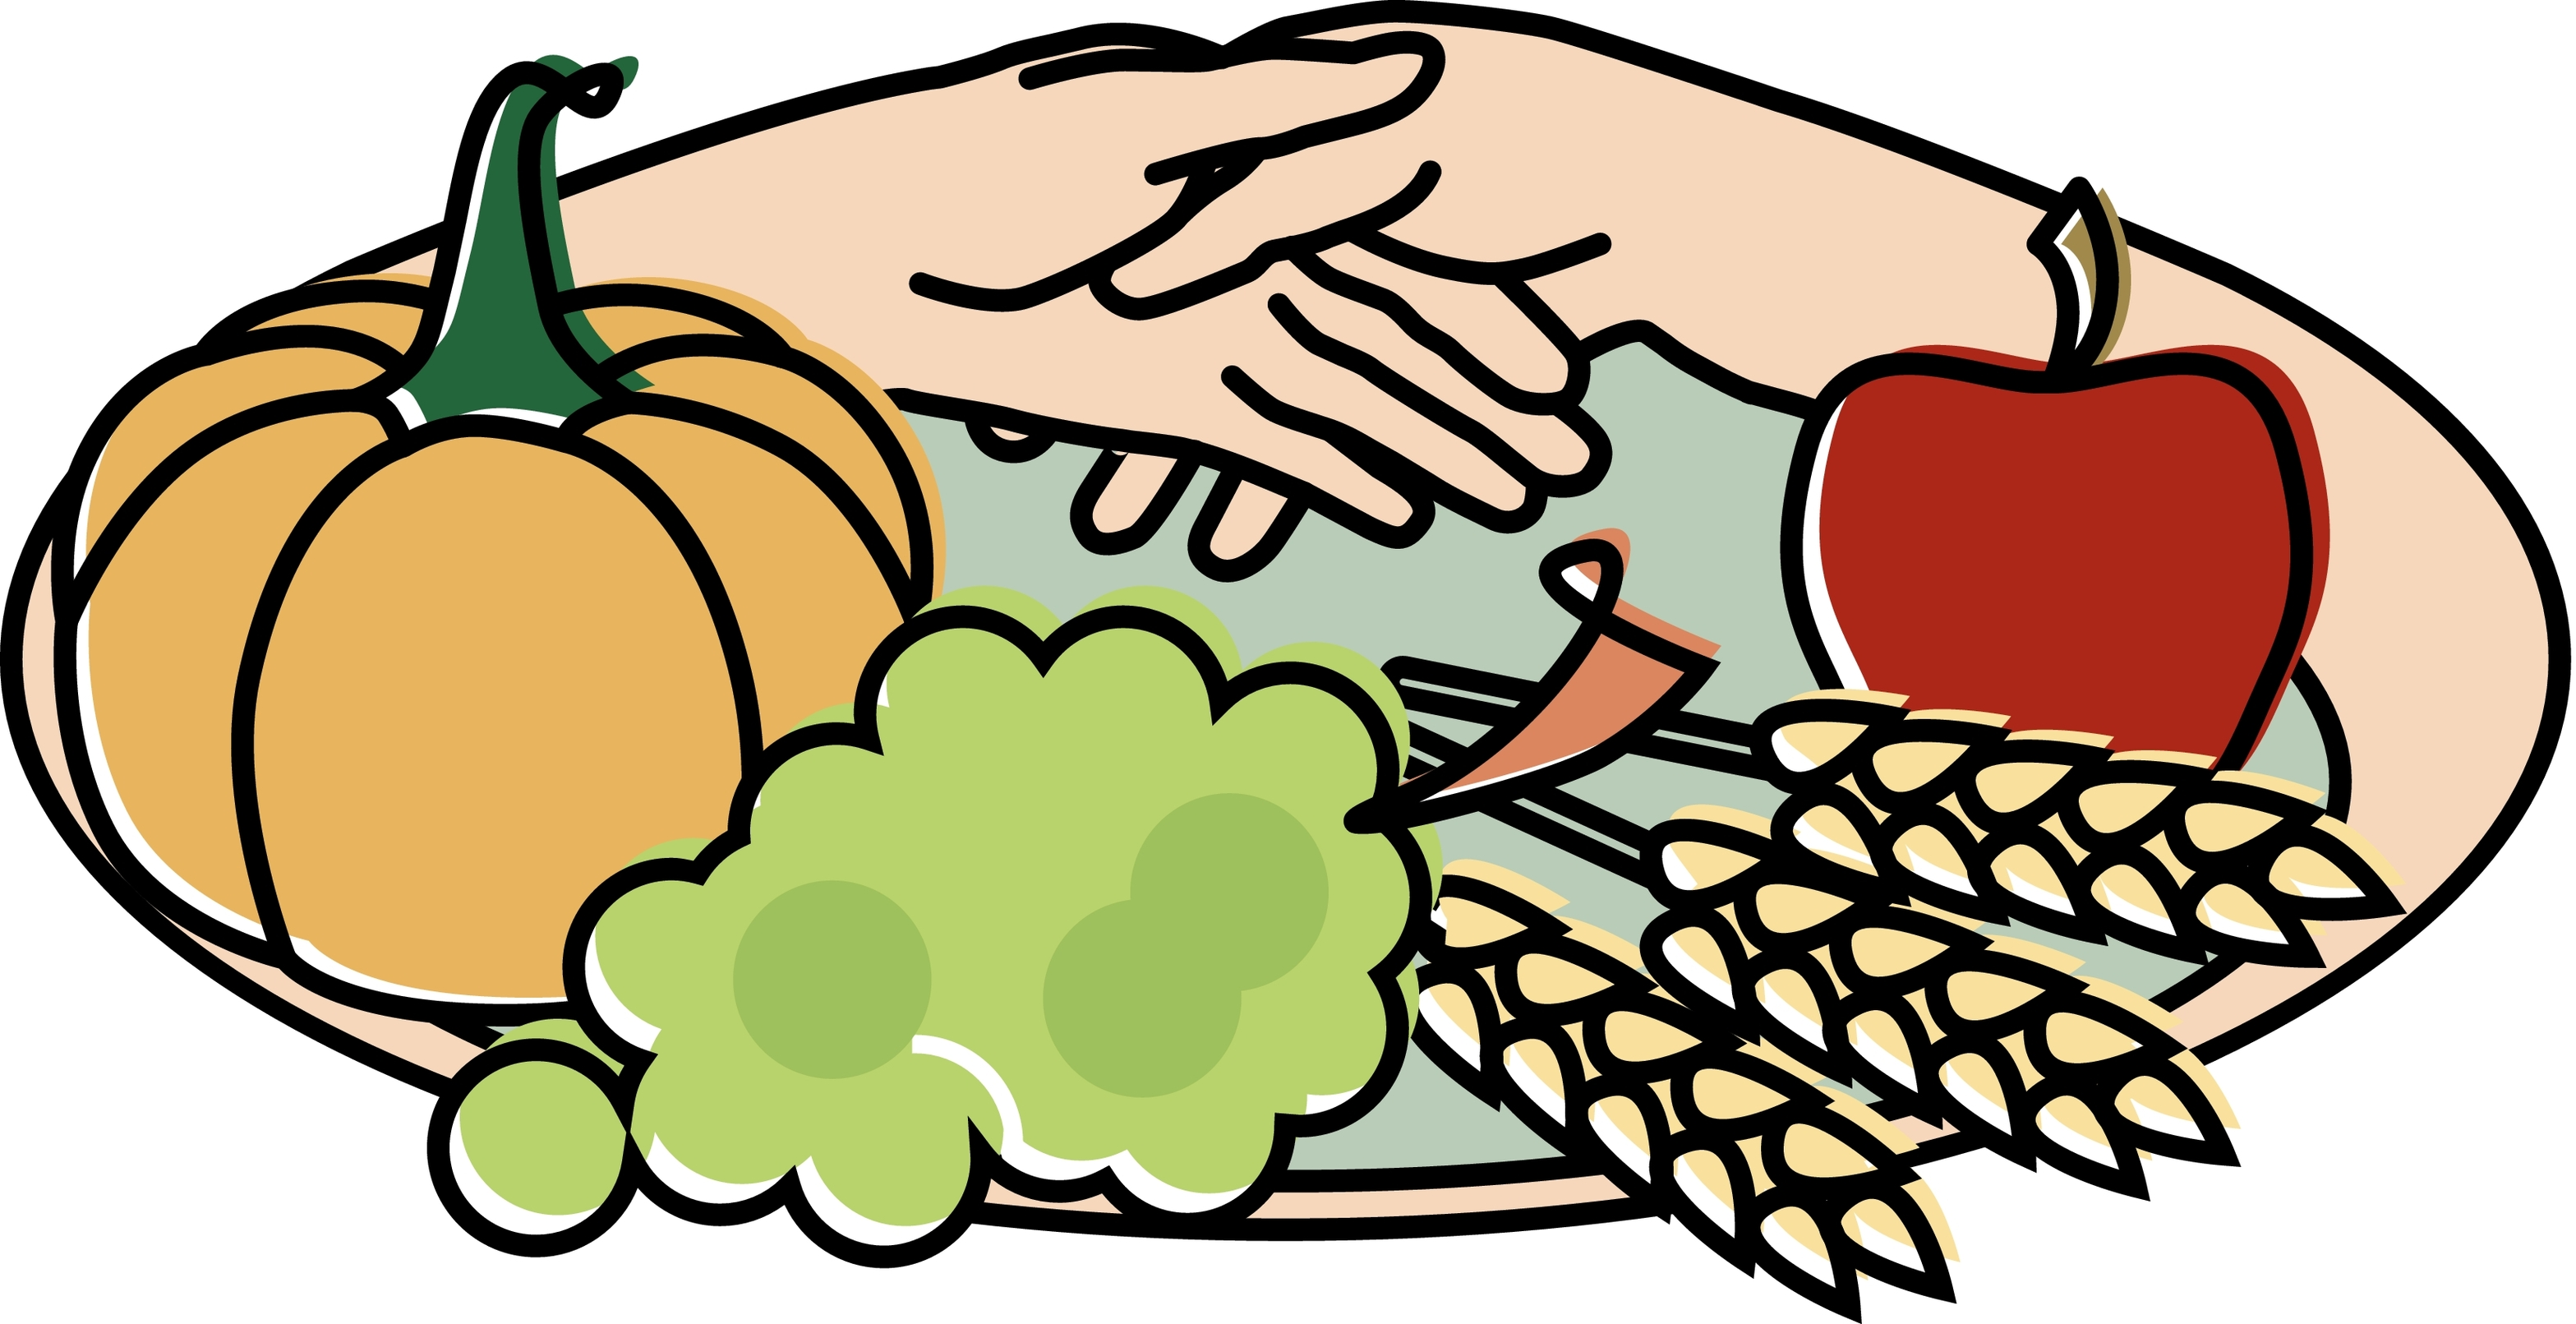 3135x1611 Clipart Food Plate